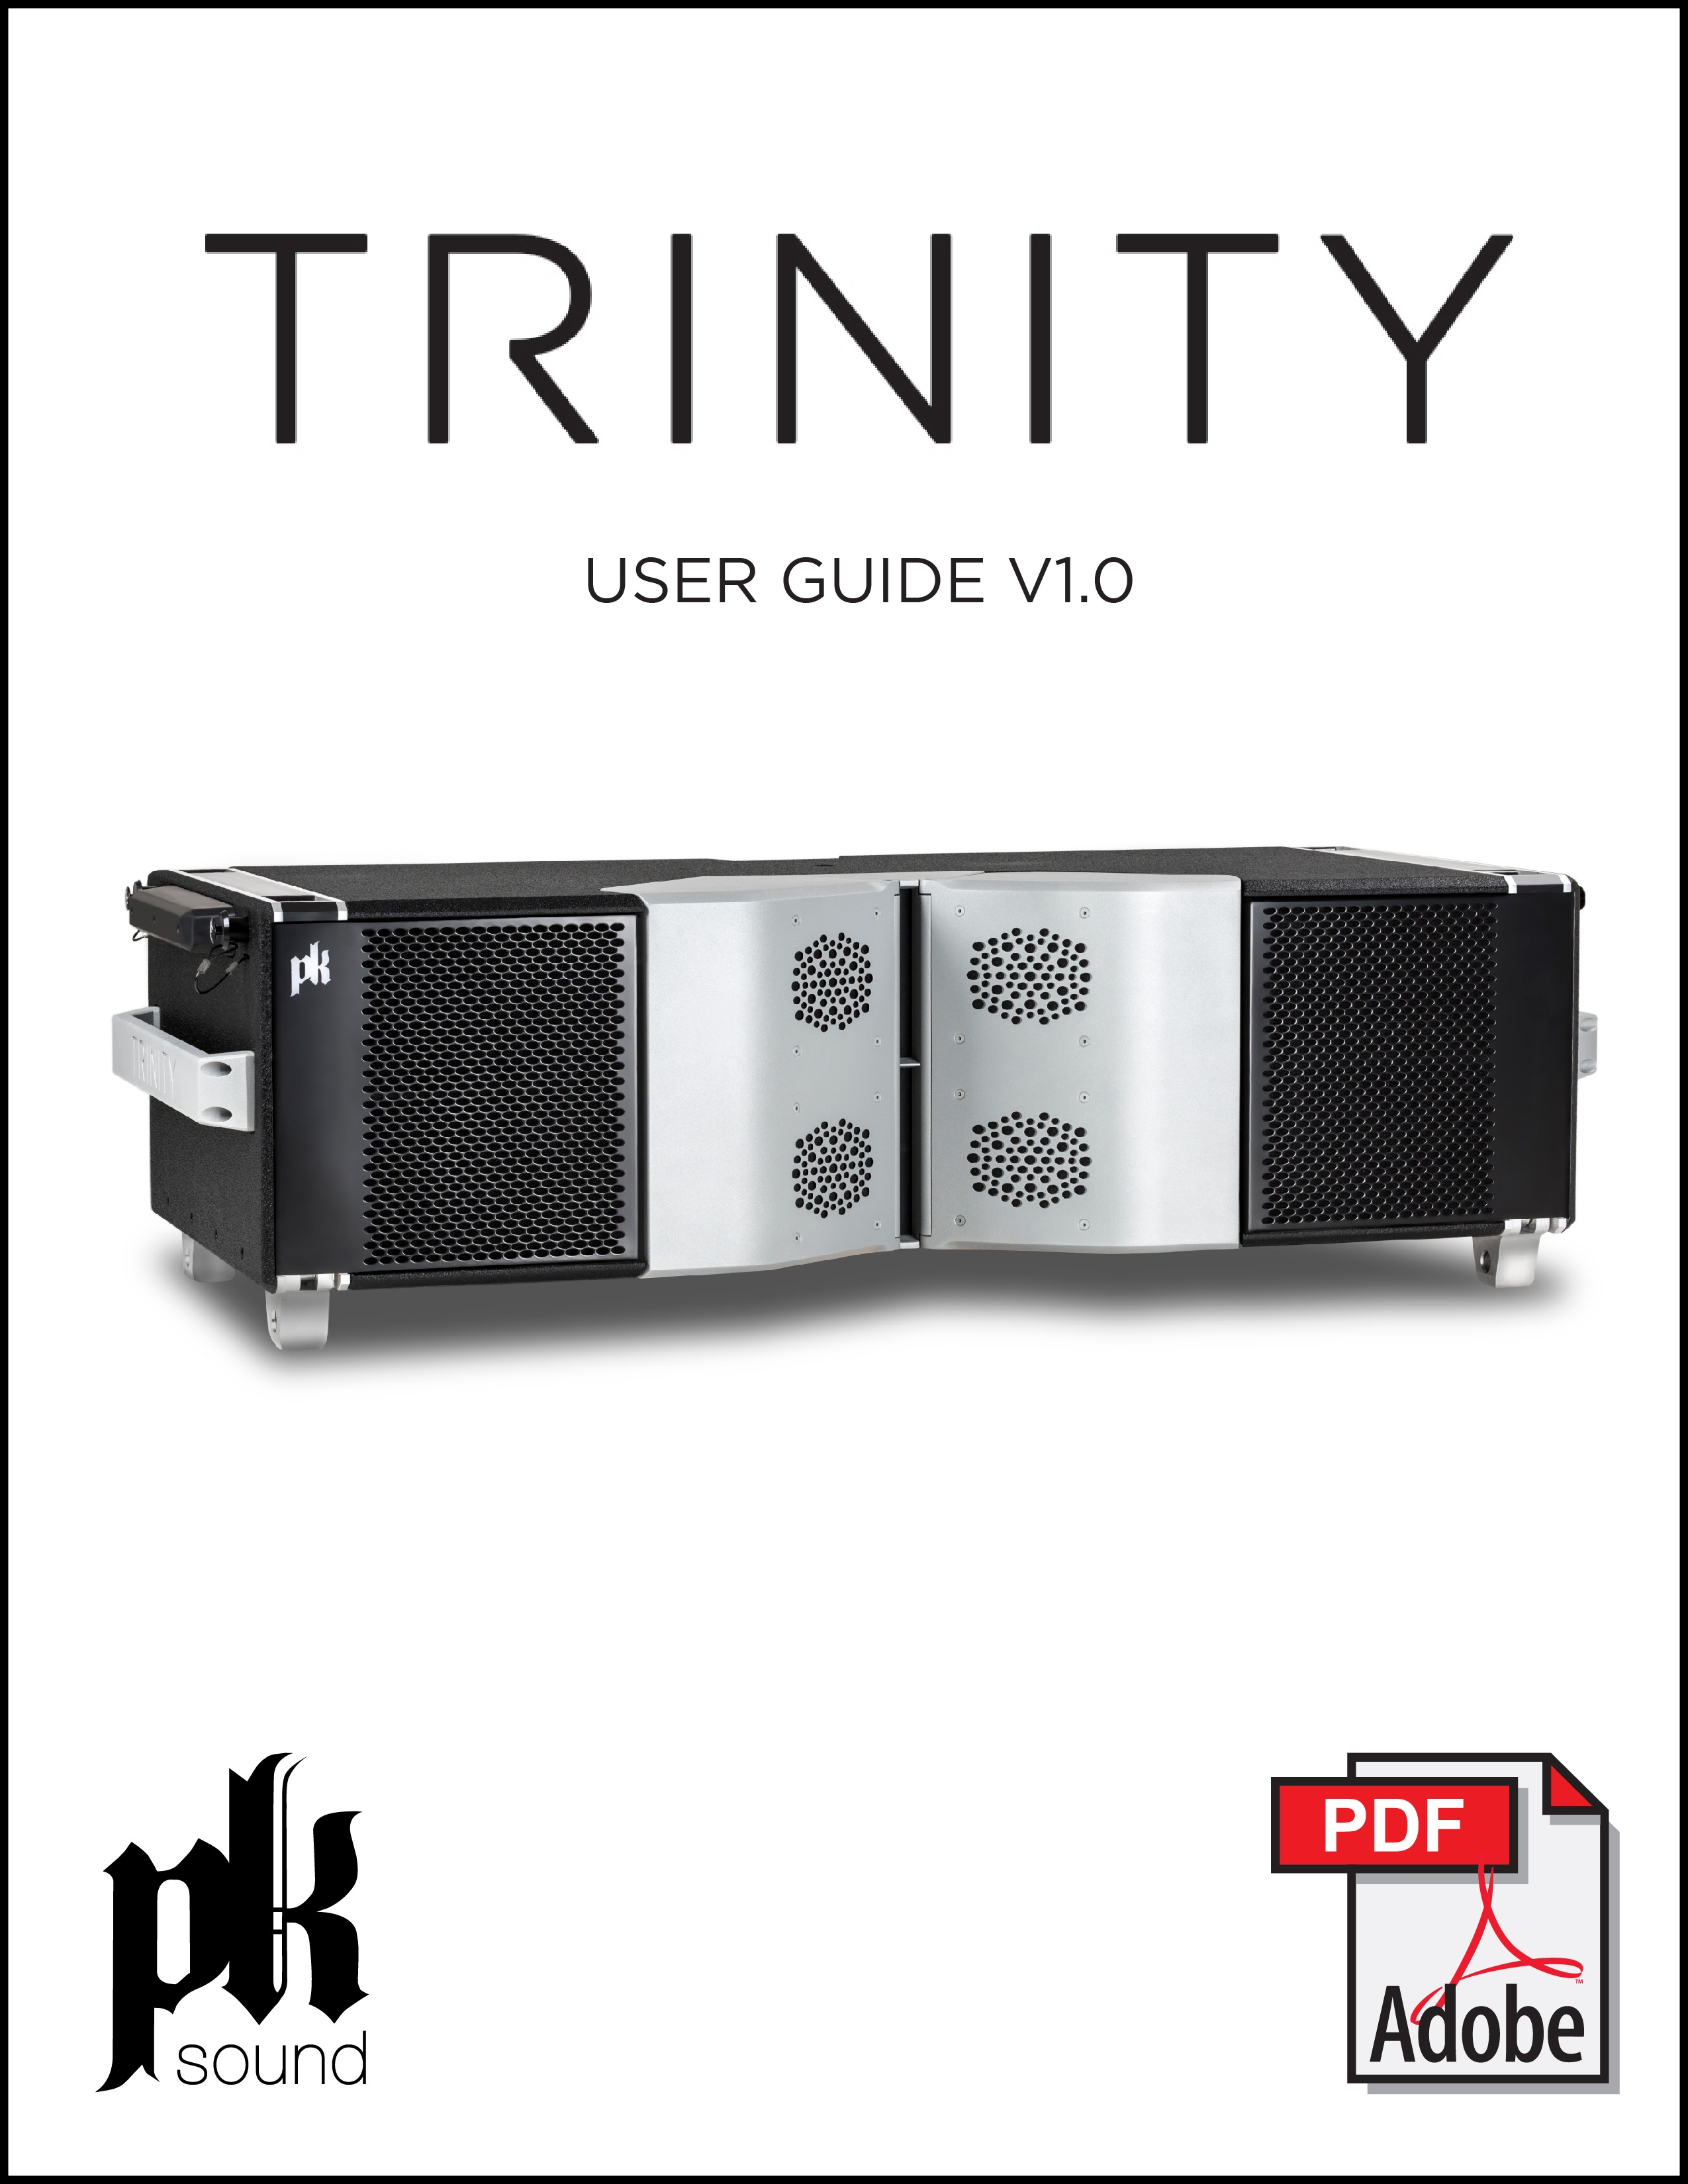 trin user guide thumb-01